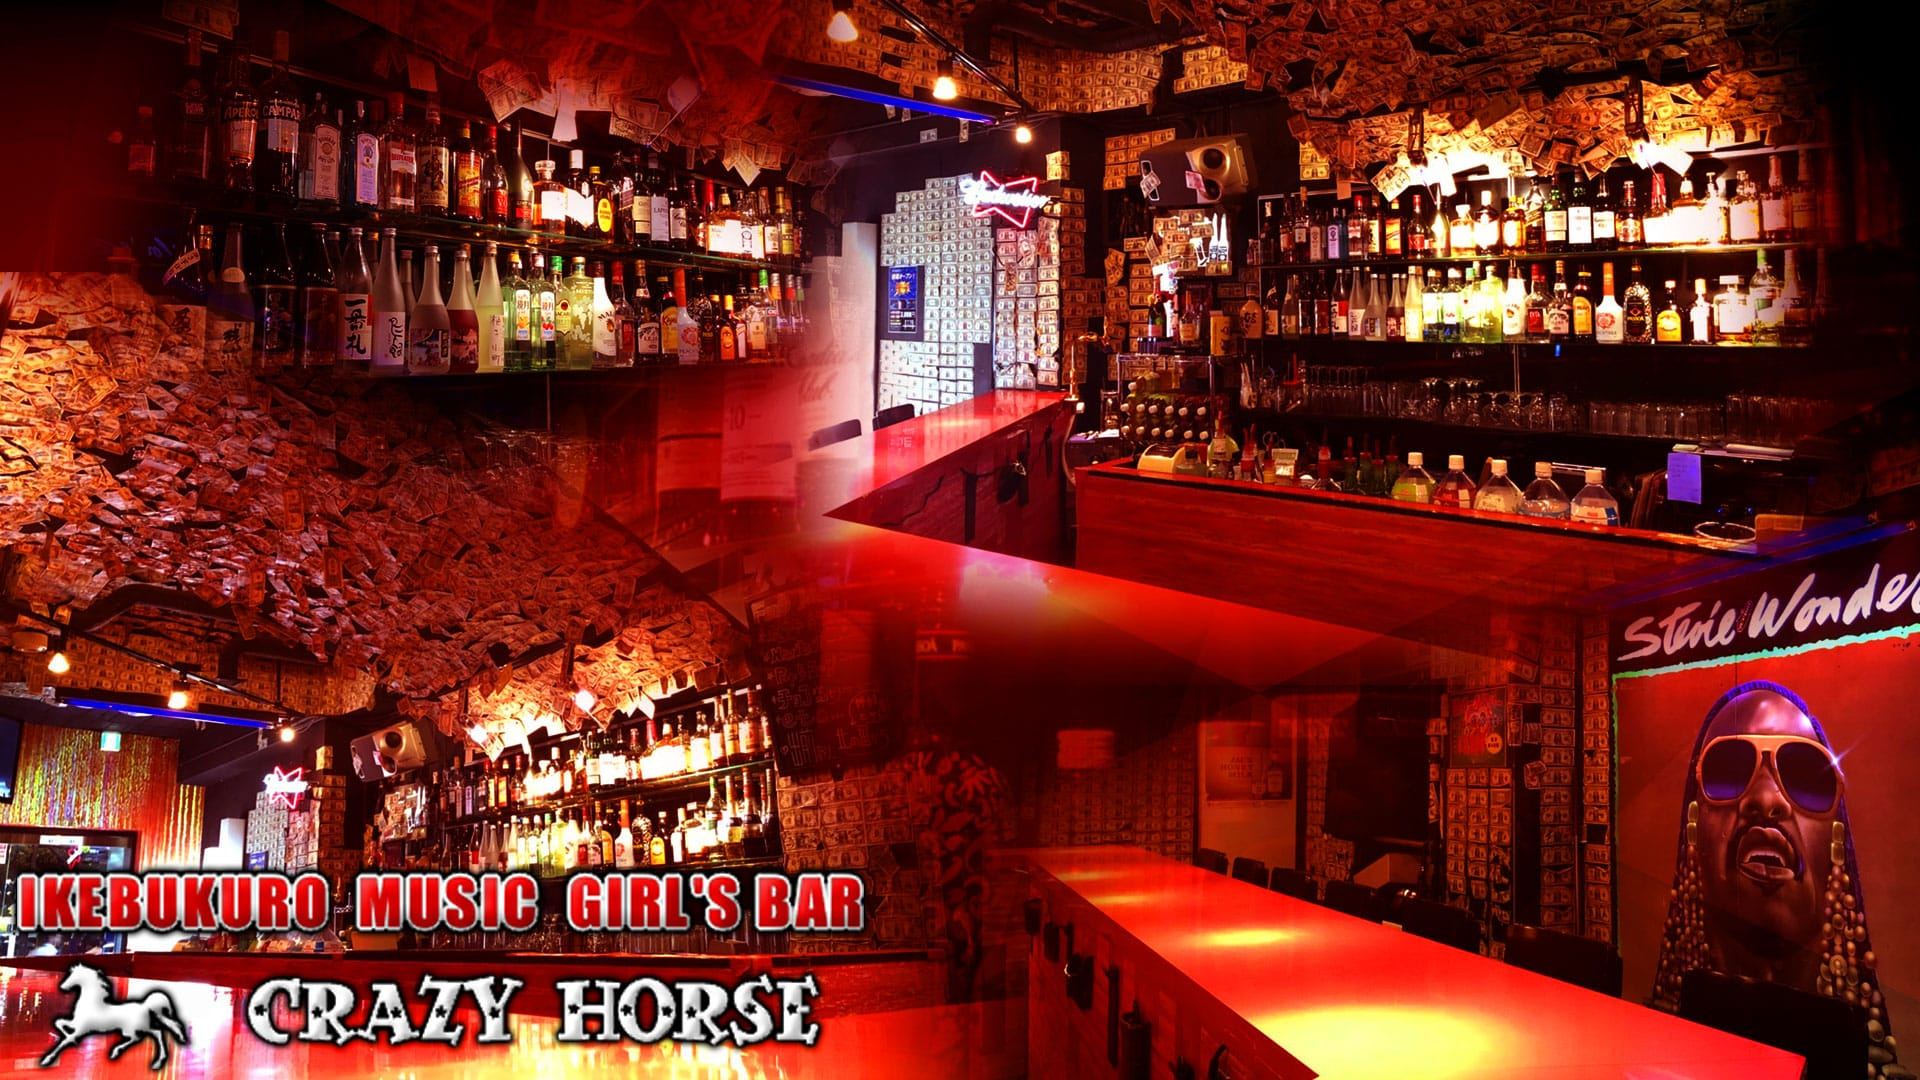 Music Girls Bar CRAZY HORSE<クレイジーホース> 池袋 ガールズバー TOP画像